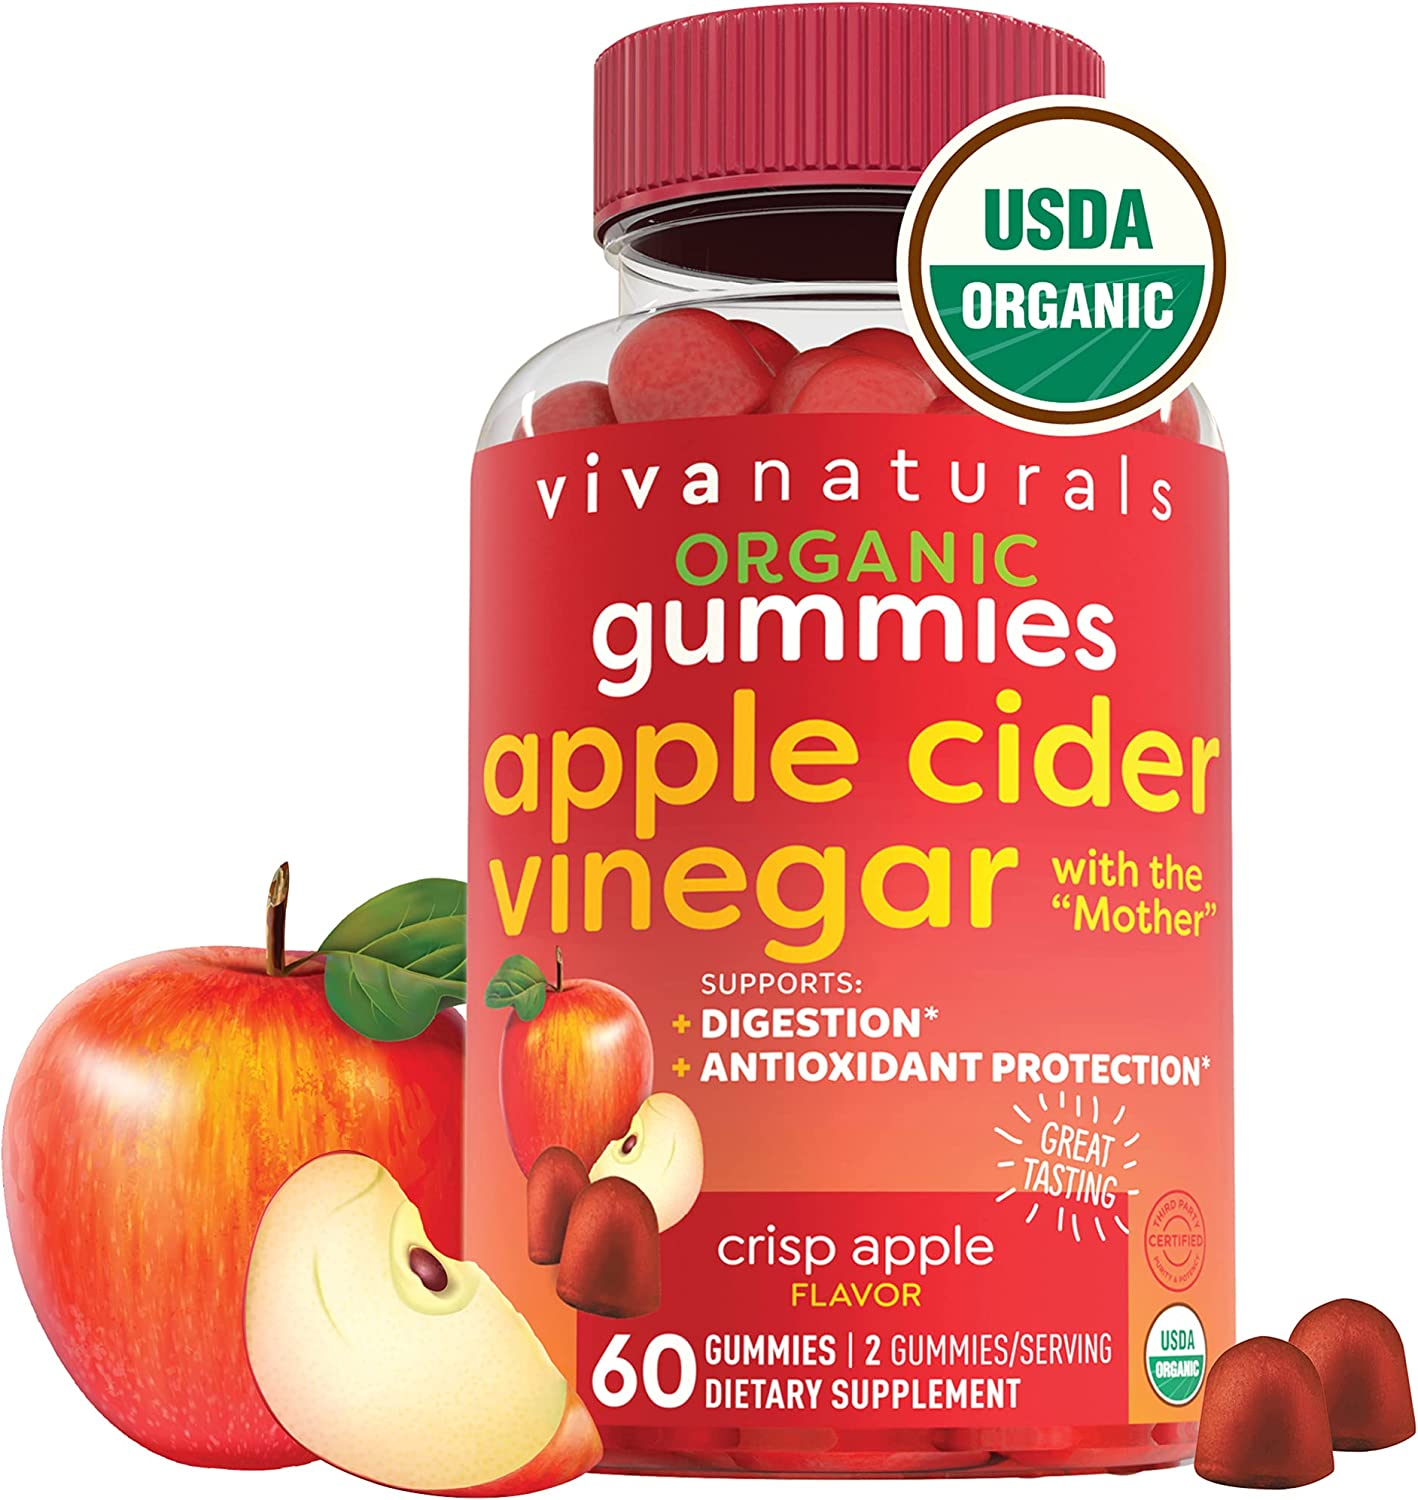 Organic Apple Cider Vinegar Gummies | 60 ACV Gummies with The Mother | Supports Healthy Digestion + Provides Antioxidant Support